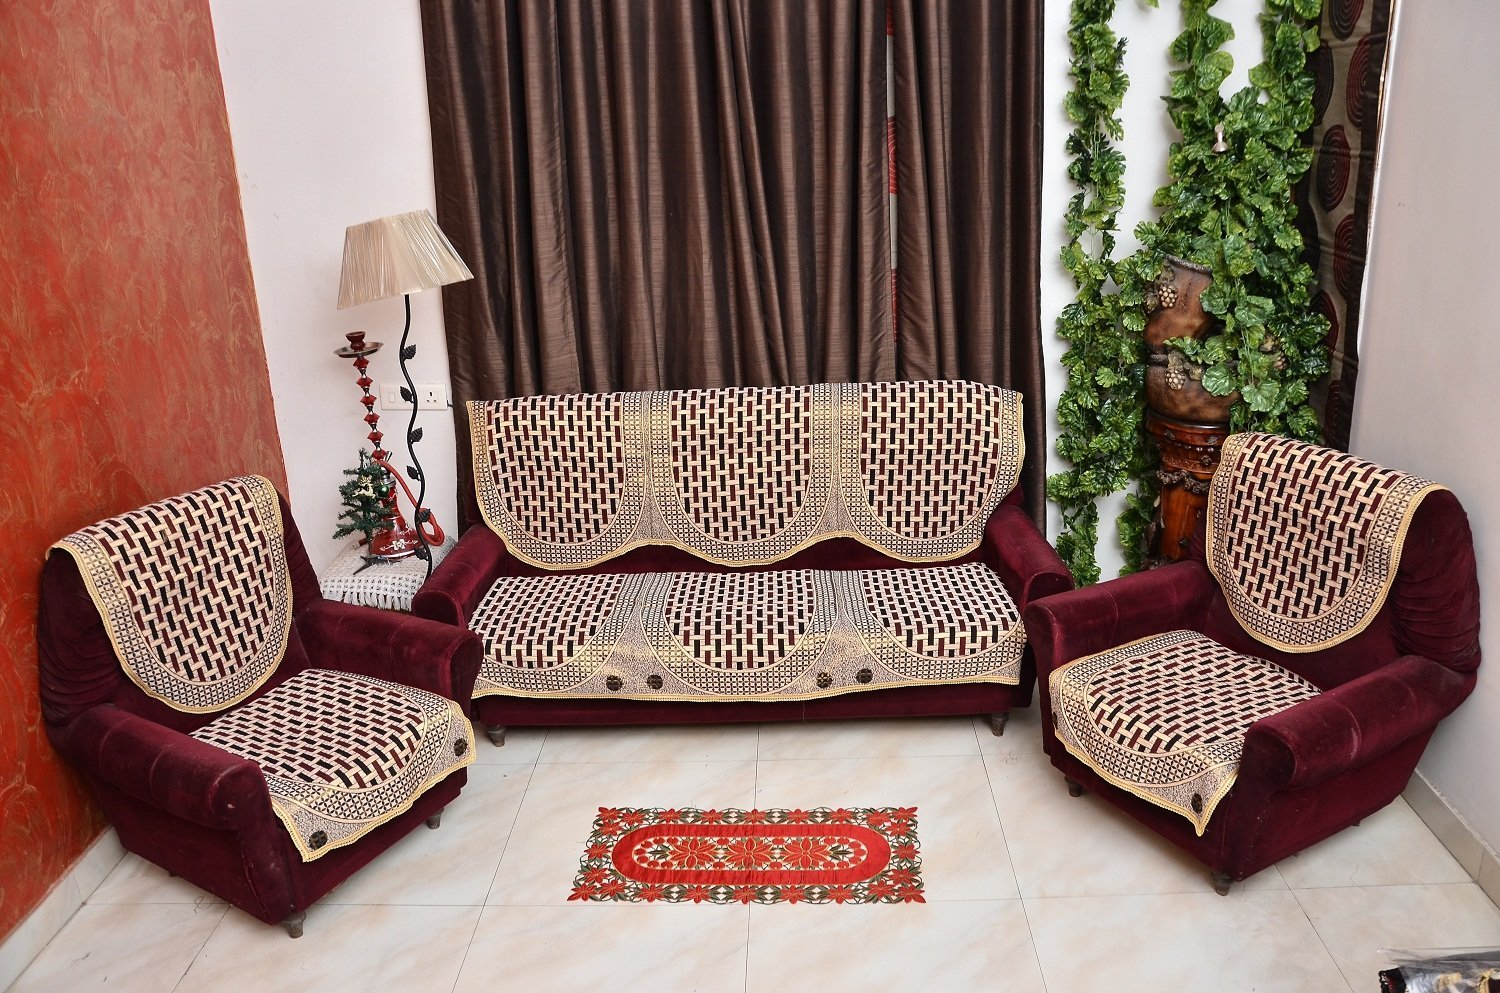 sofa covers low price stores los angeles benefits of using cover goodworksfurniture buy rshp 5 seater maroon coffee cotton online at prices vbdfwem